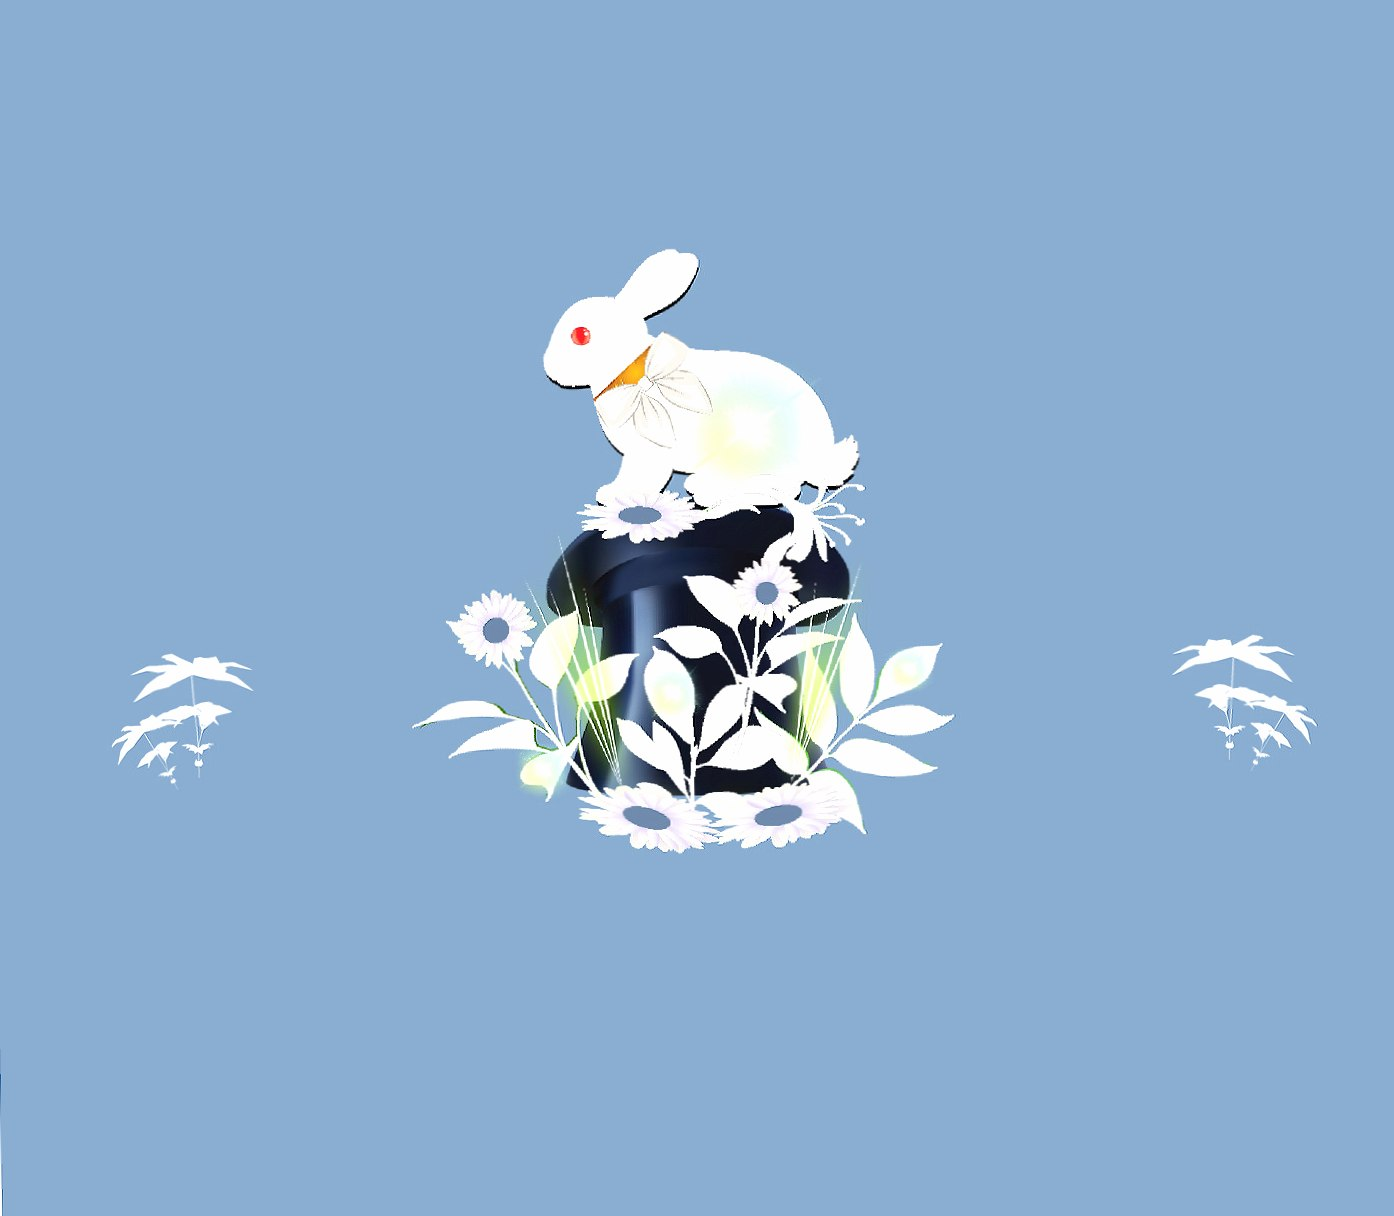 Rabbit hat 2 wallpapers HD quality